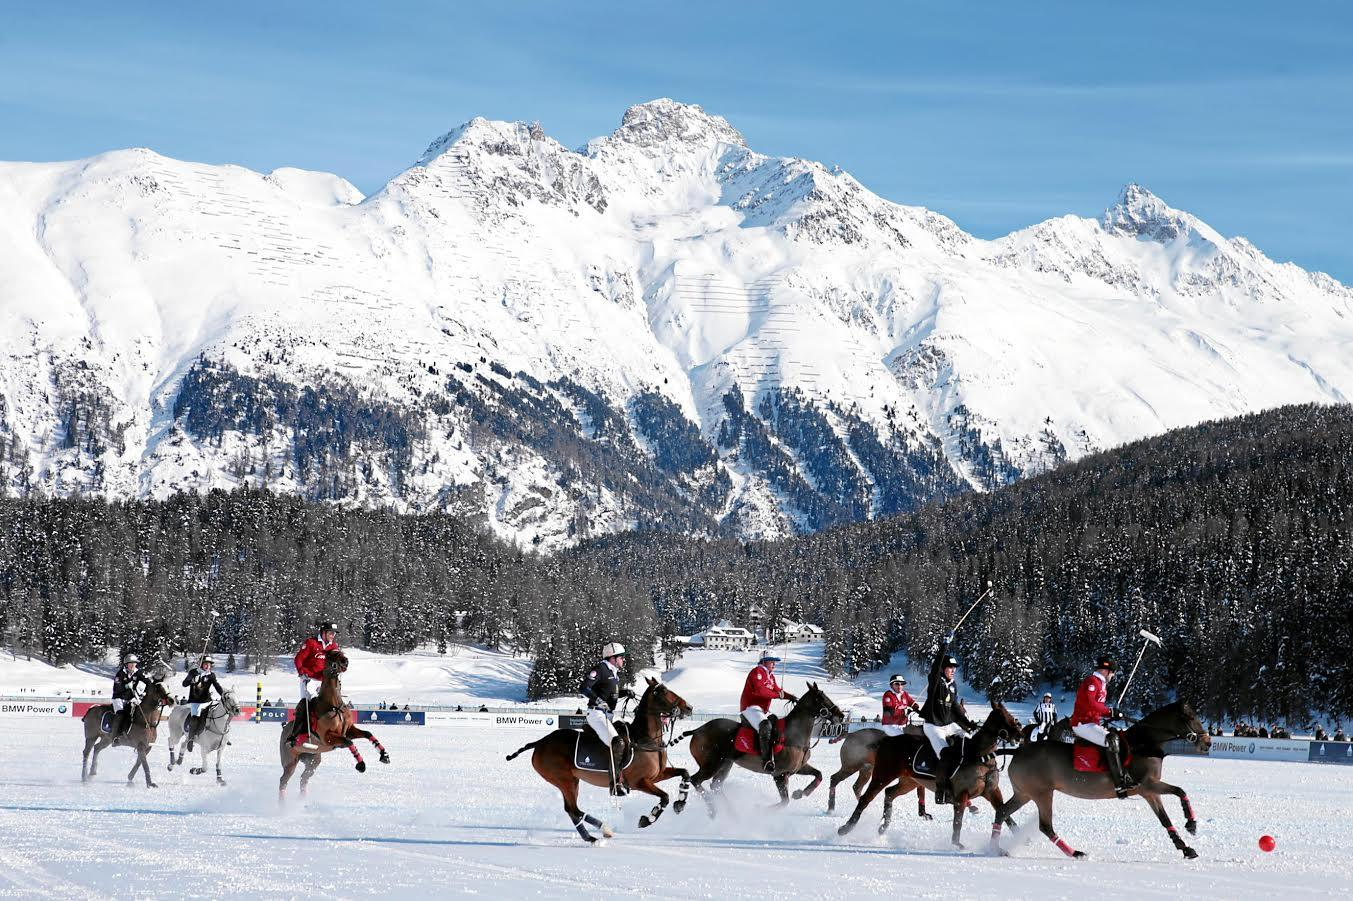 Azerbaijan became guest country of Snow Polo World Cup in St. Moritz, Switzerland